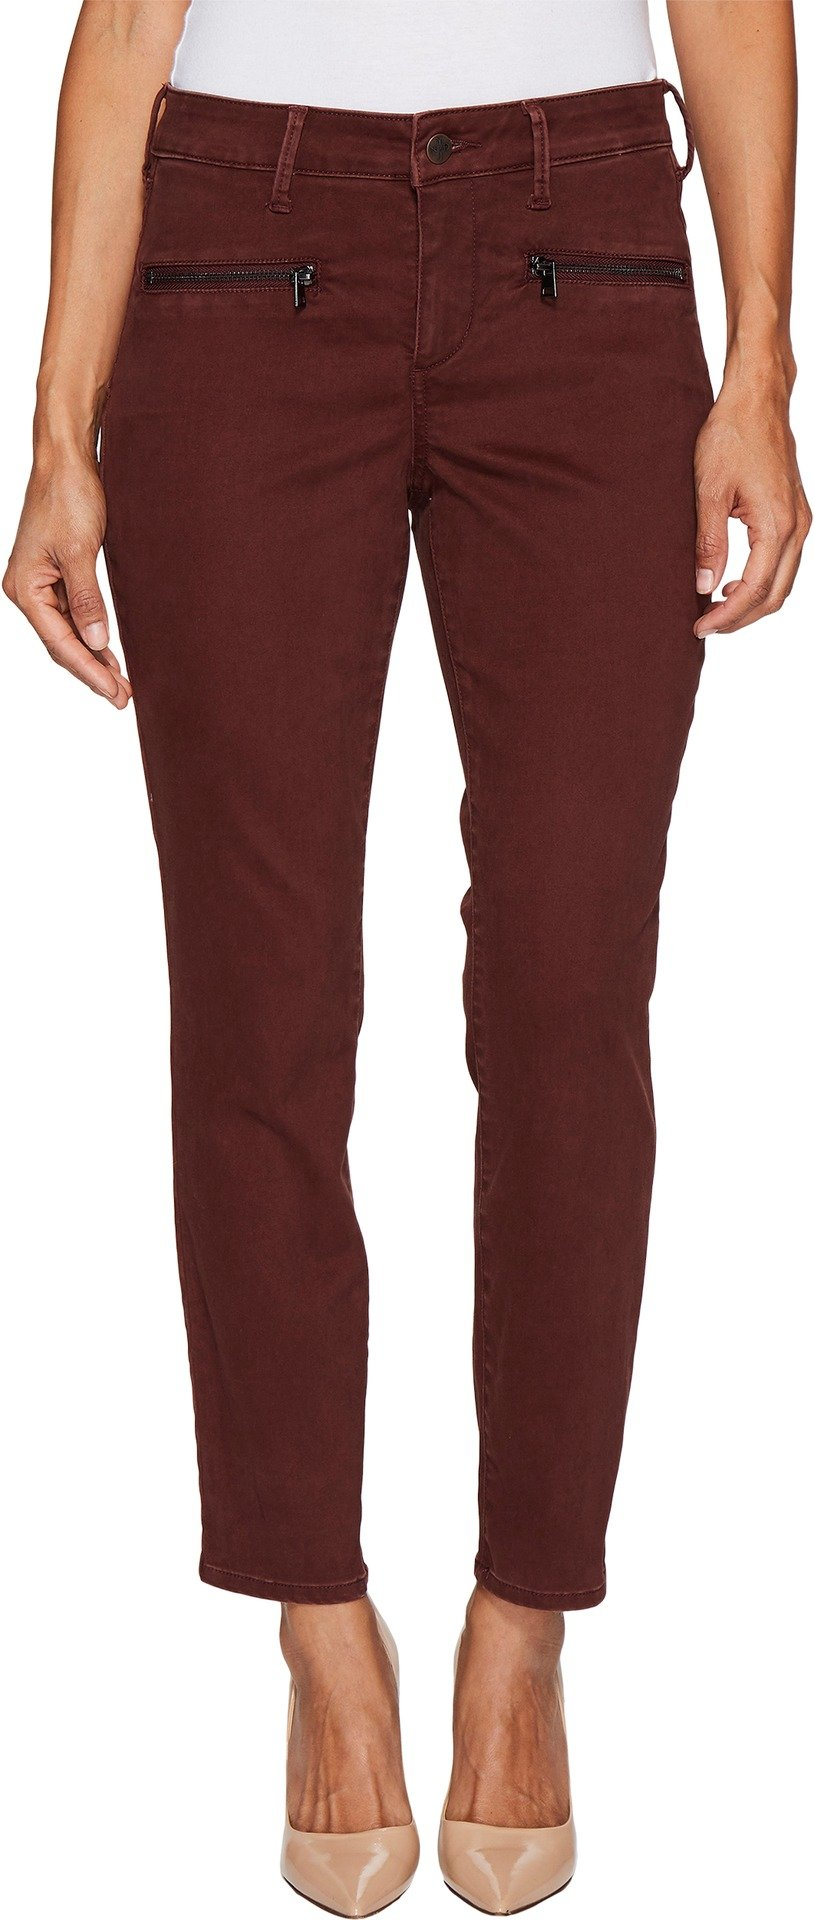 NYDJ Women's Petite Size Skinny Chino Pants, Deep Currant with Zipper, 12P